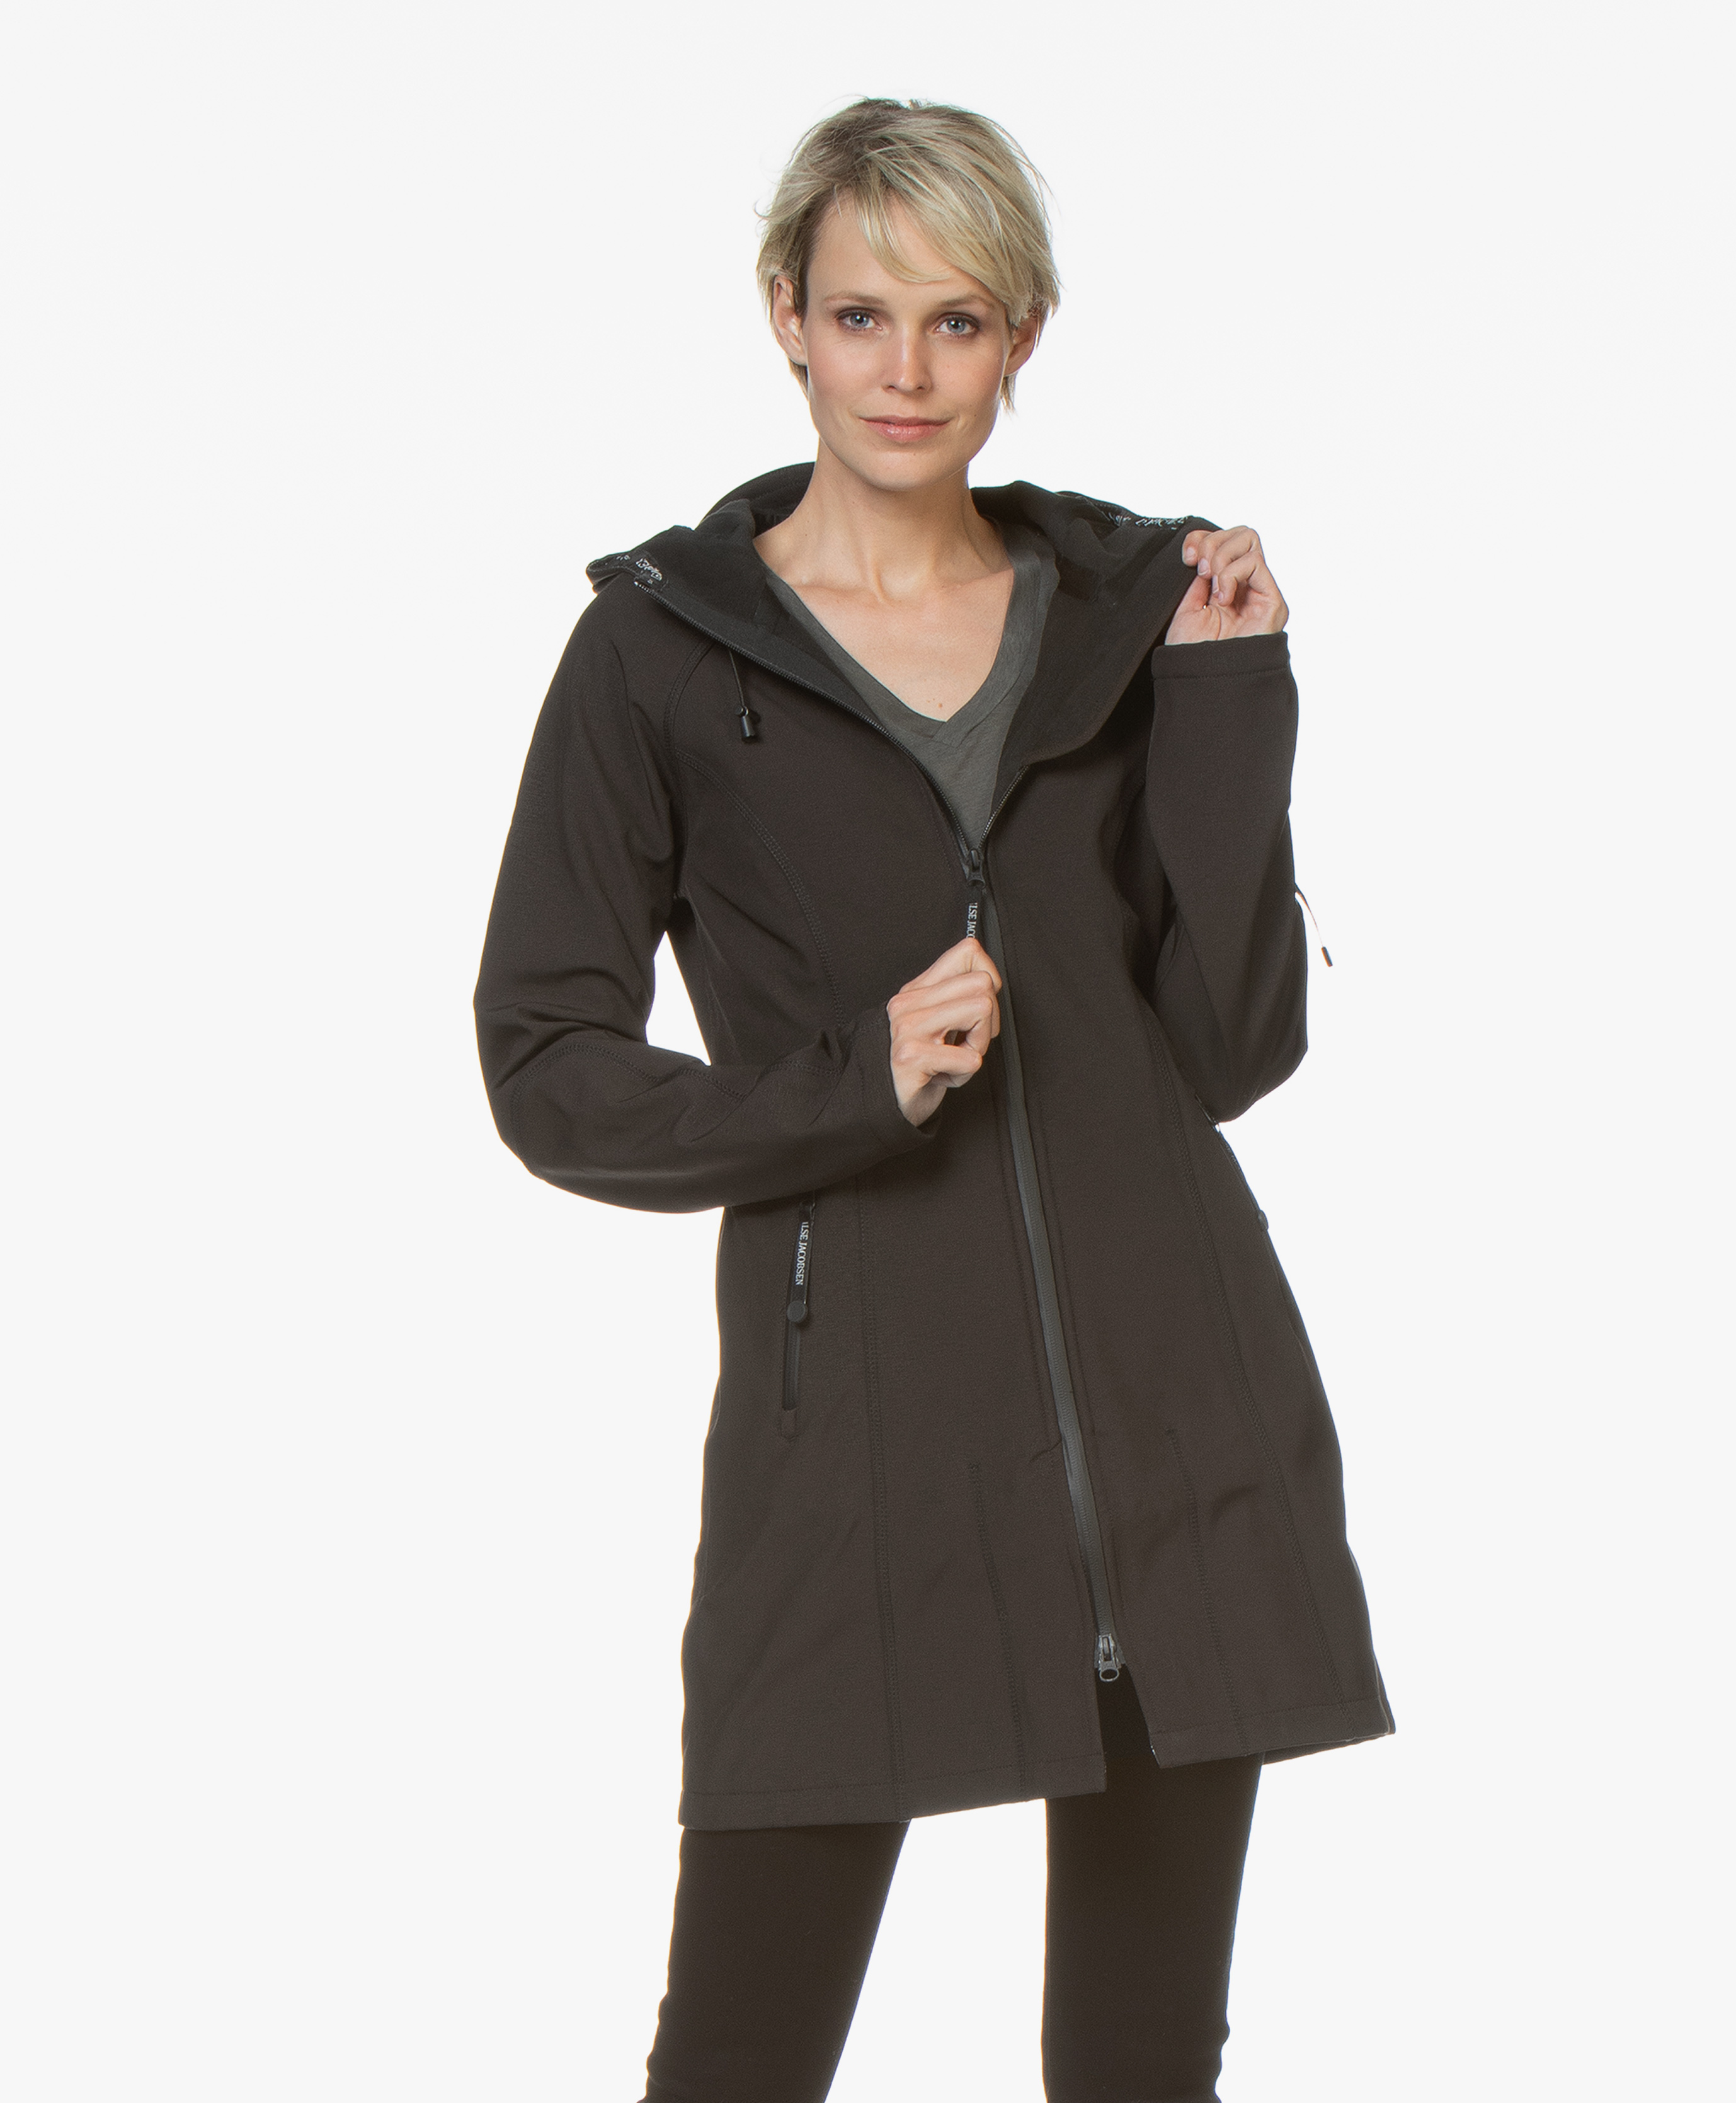 4861ca6b4c90 Ilse Jacobsen Softshell Raincoat Rain37 - Black - rain37 001